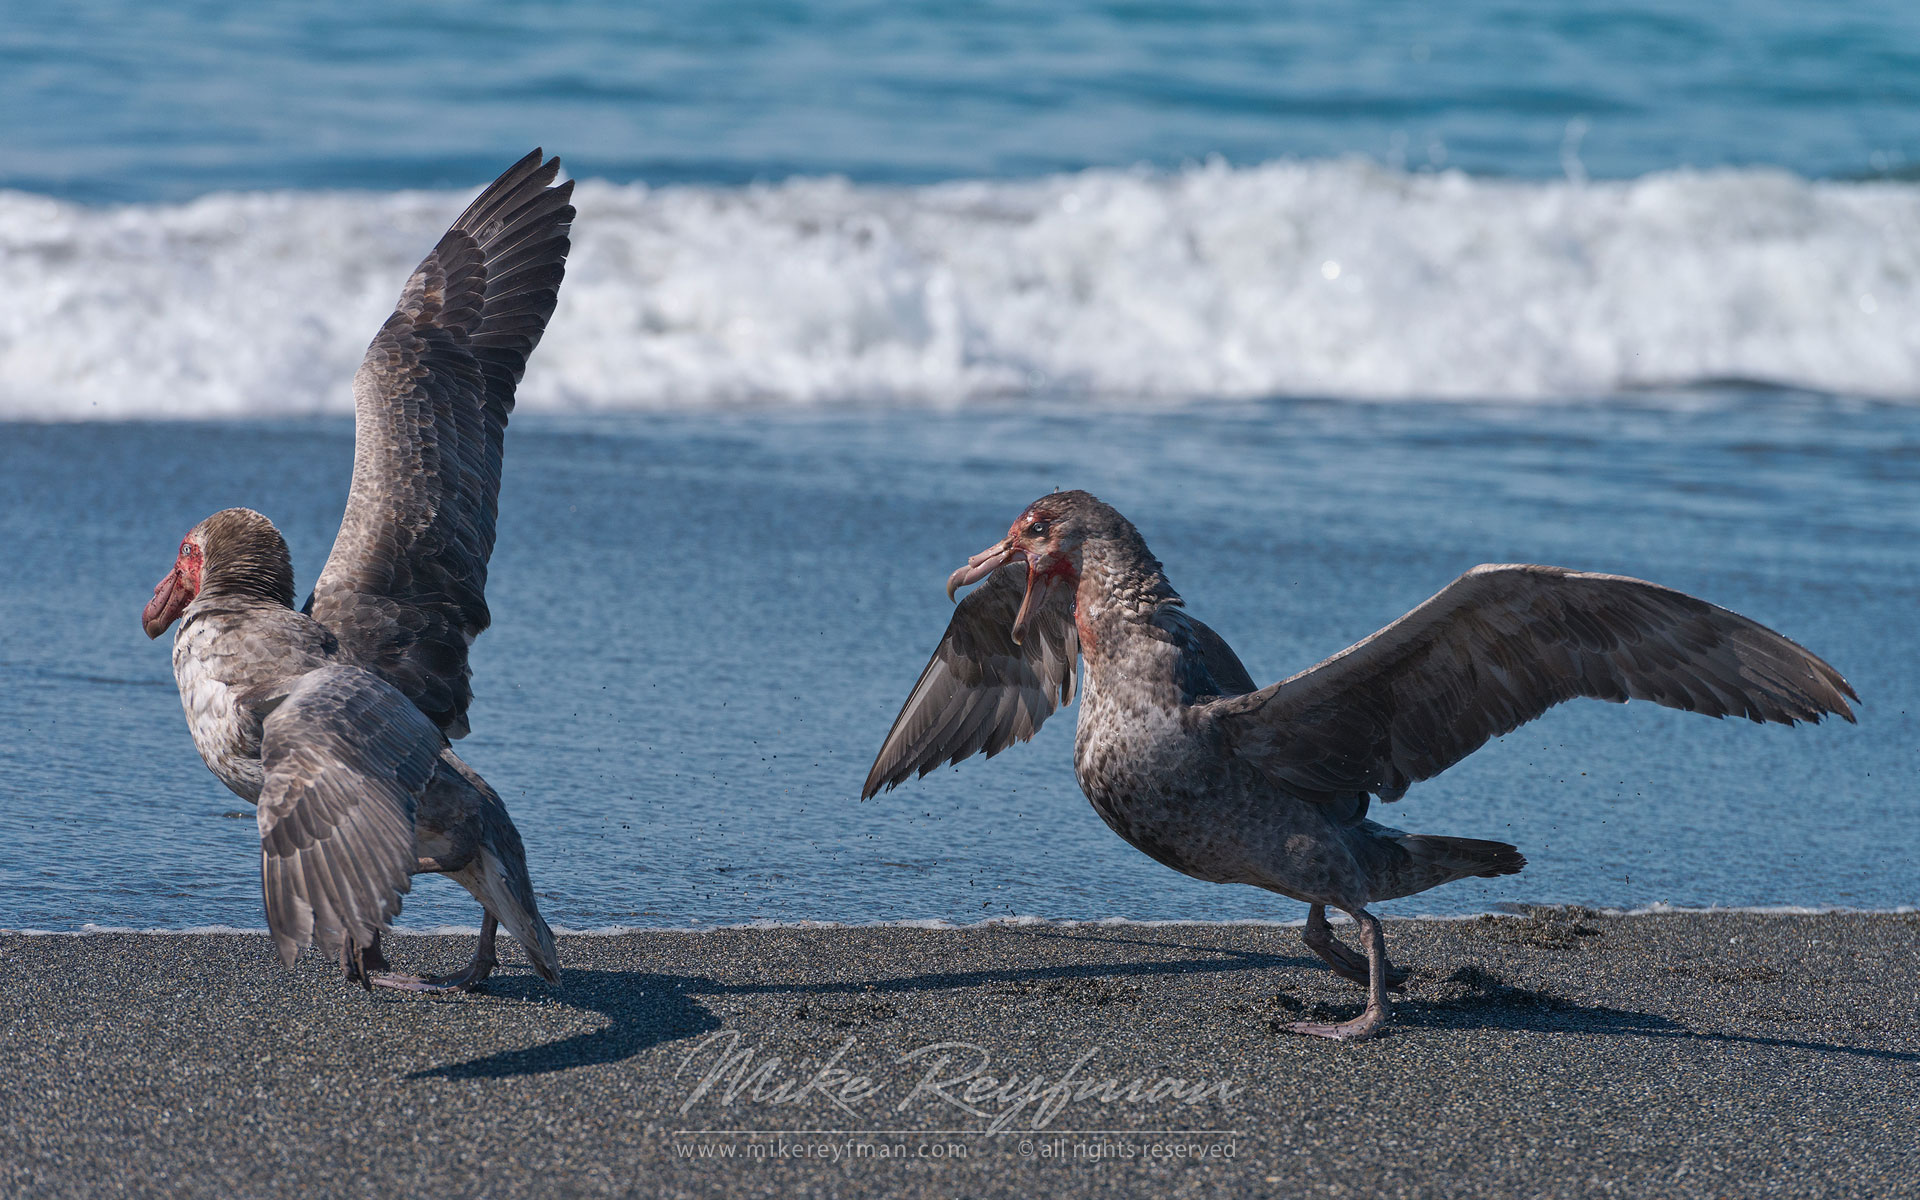 Antarctic Giant Petrels (Macronectes giganteus) fighting on  St. Andrews Bay, South Georgia, Sub-Antarctic. - Albatrosses-Petrels-Landscapes-South-Georgia-Sub-Antarctic - Mike Reyfman Photography